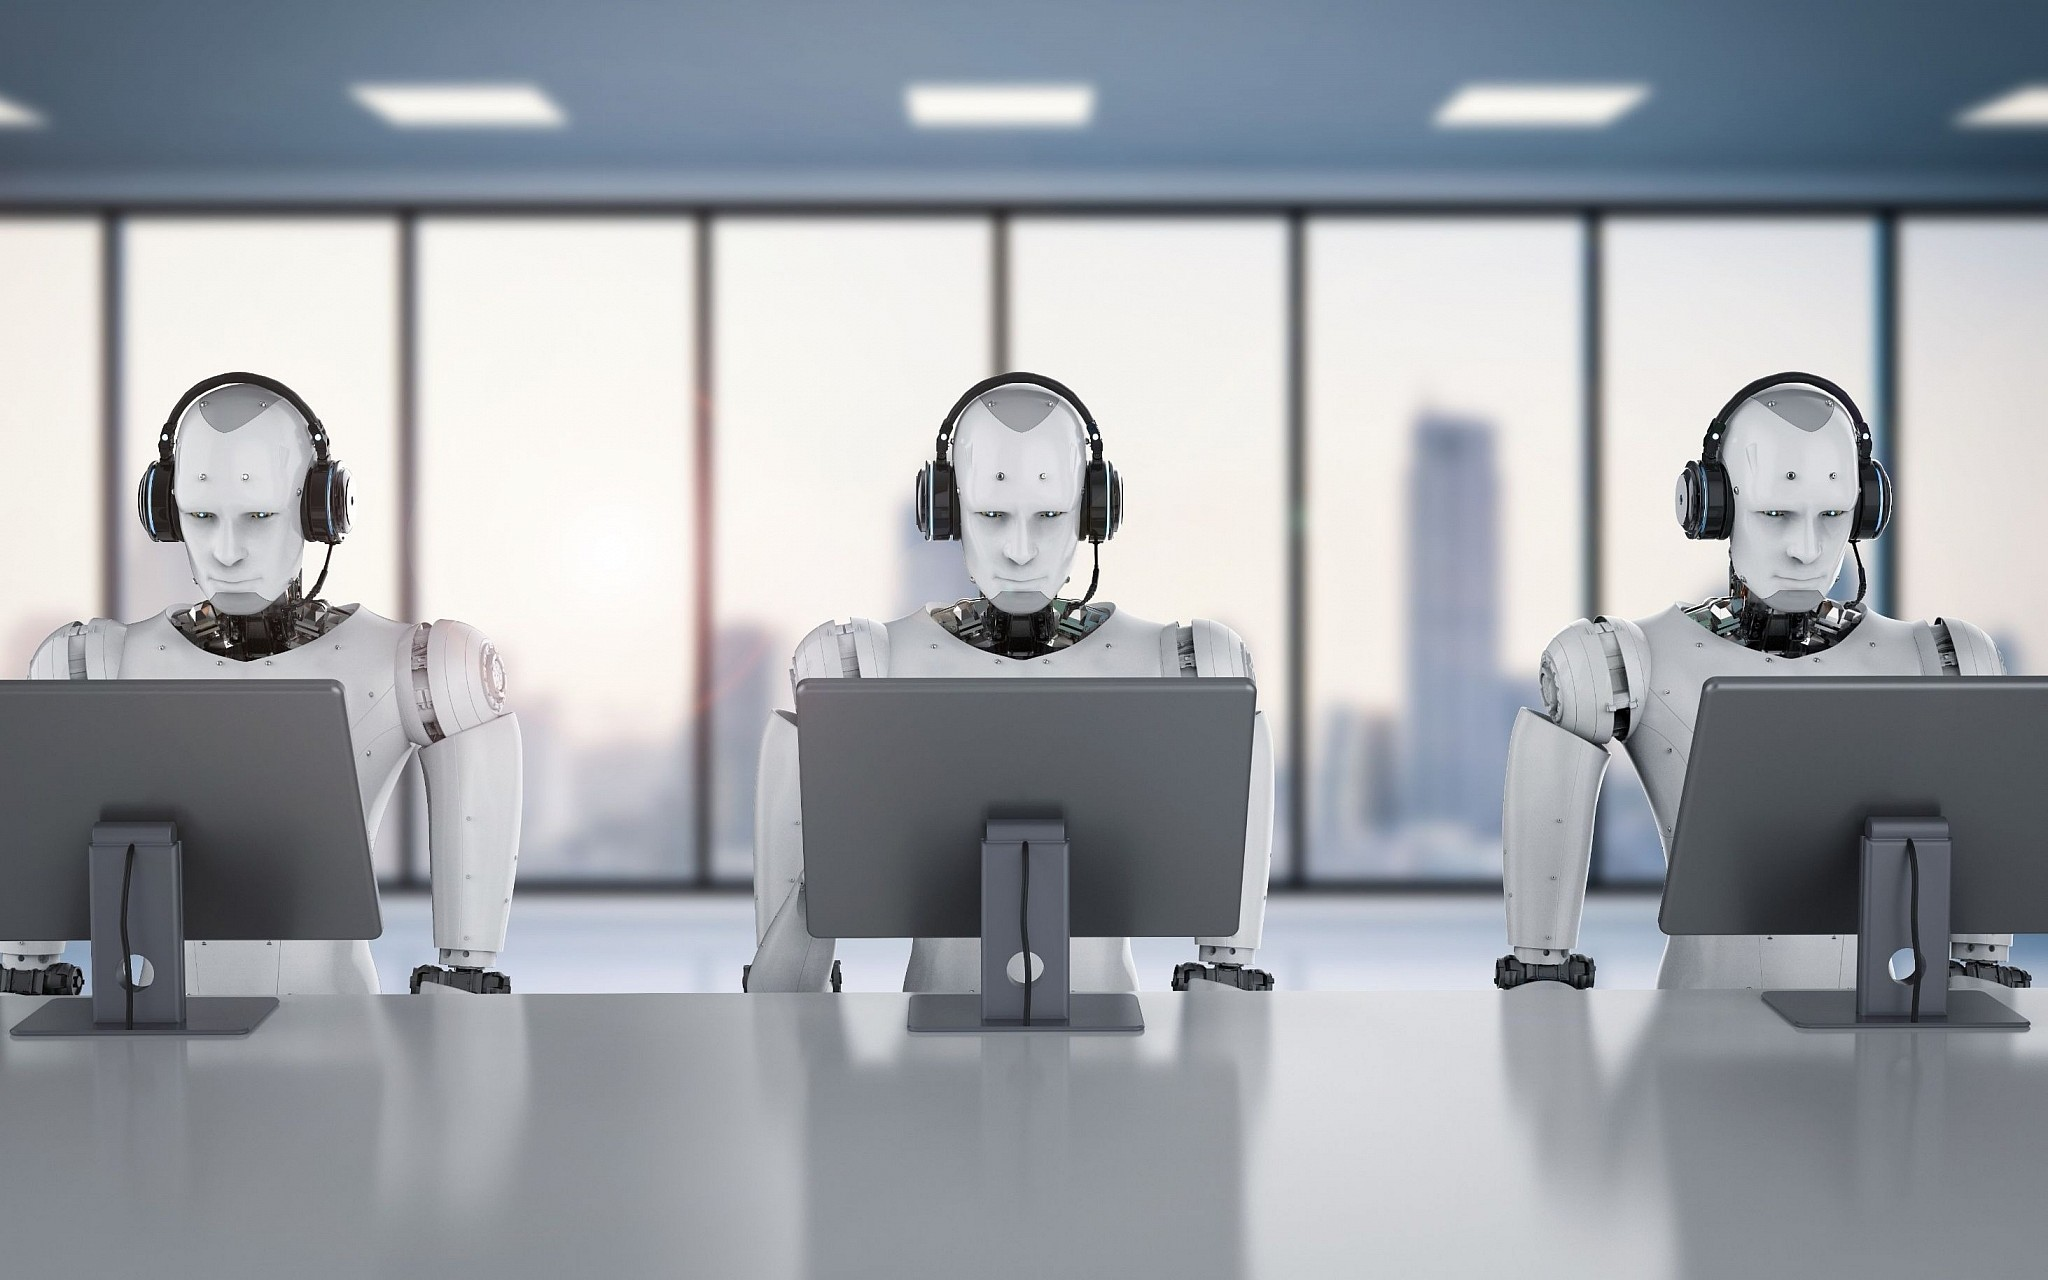 OurCrowd to set up new $100m fund with focus on AI technologies ...